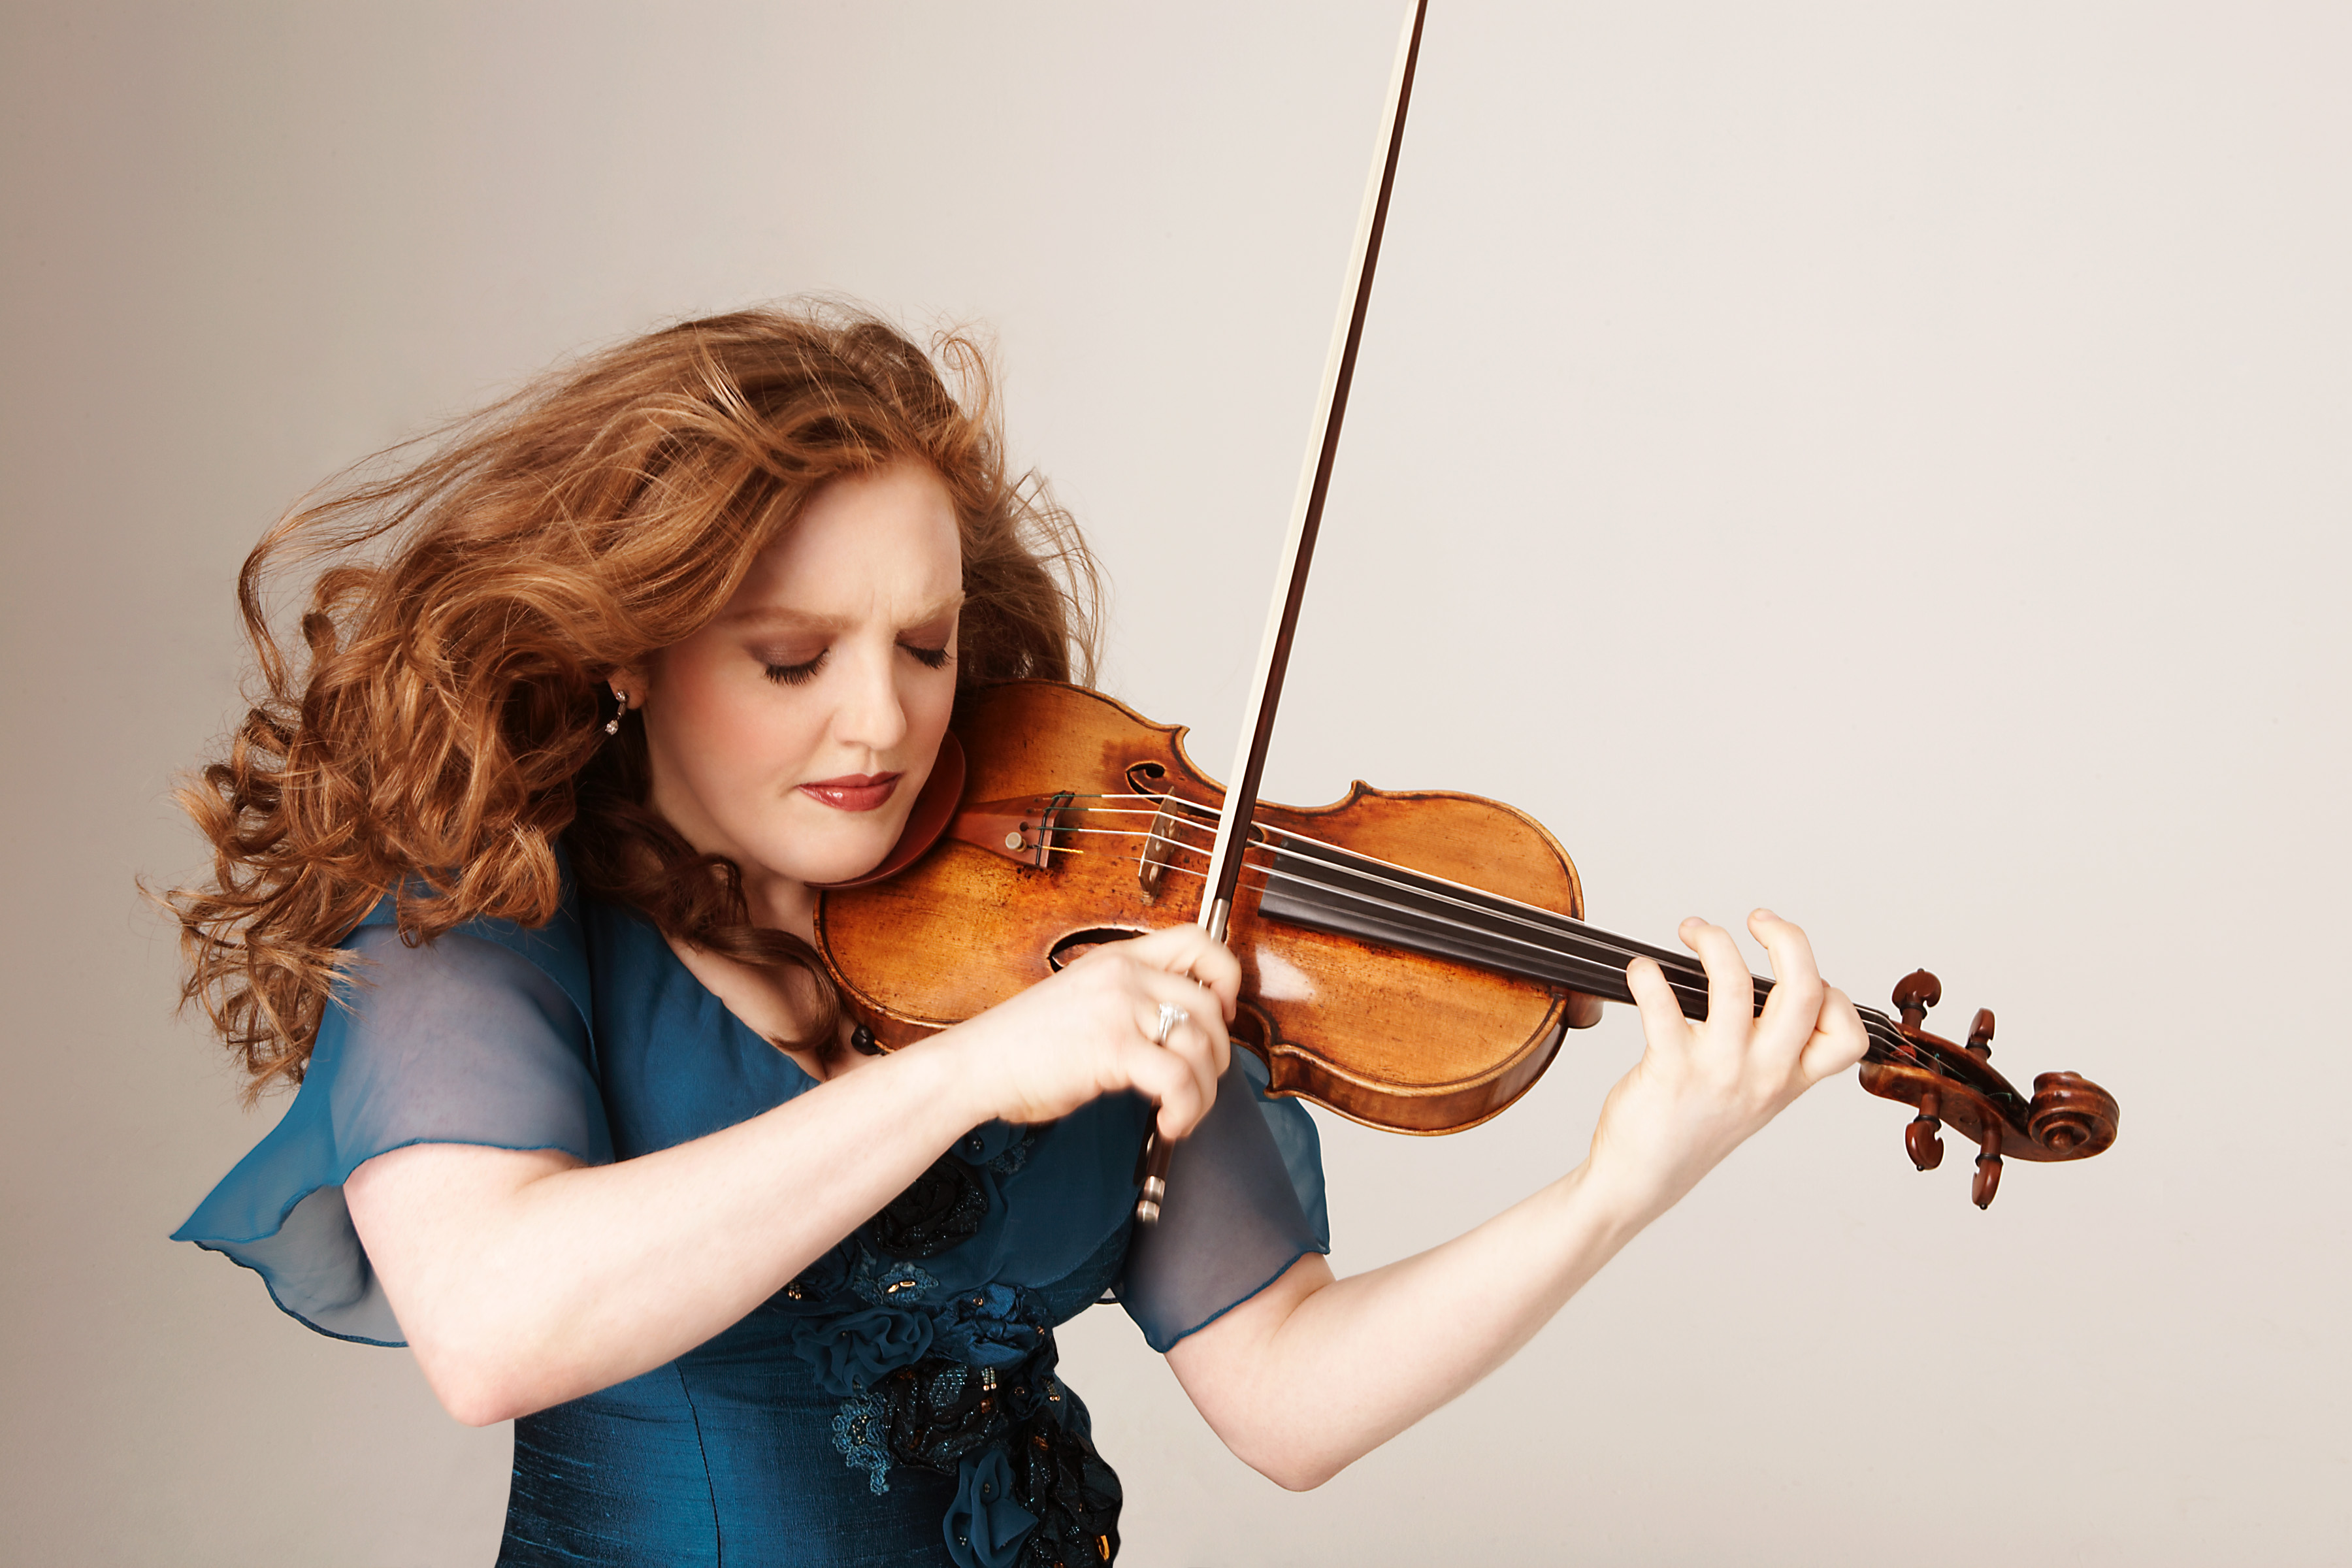 Classical Classroom, Episode 191: Talkin' About the Blues (Dialogues) with Rachel Barton Pine